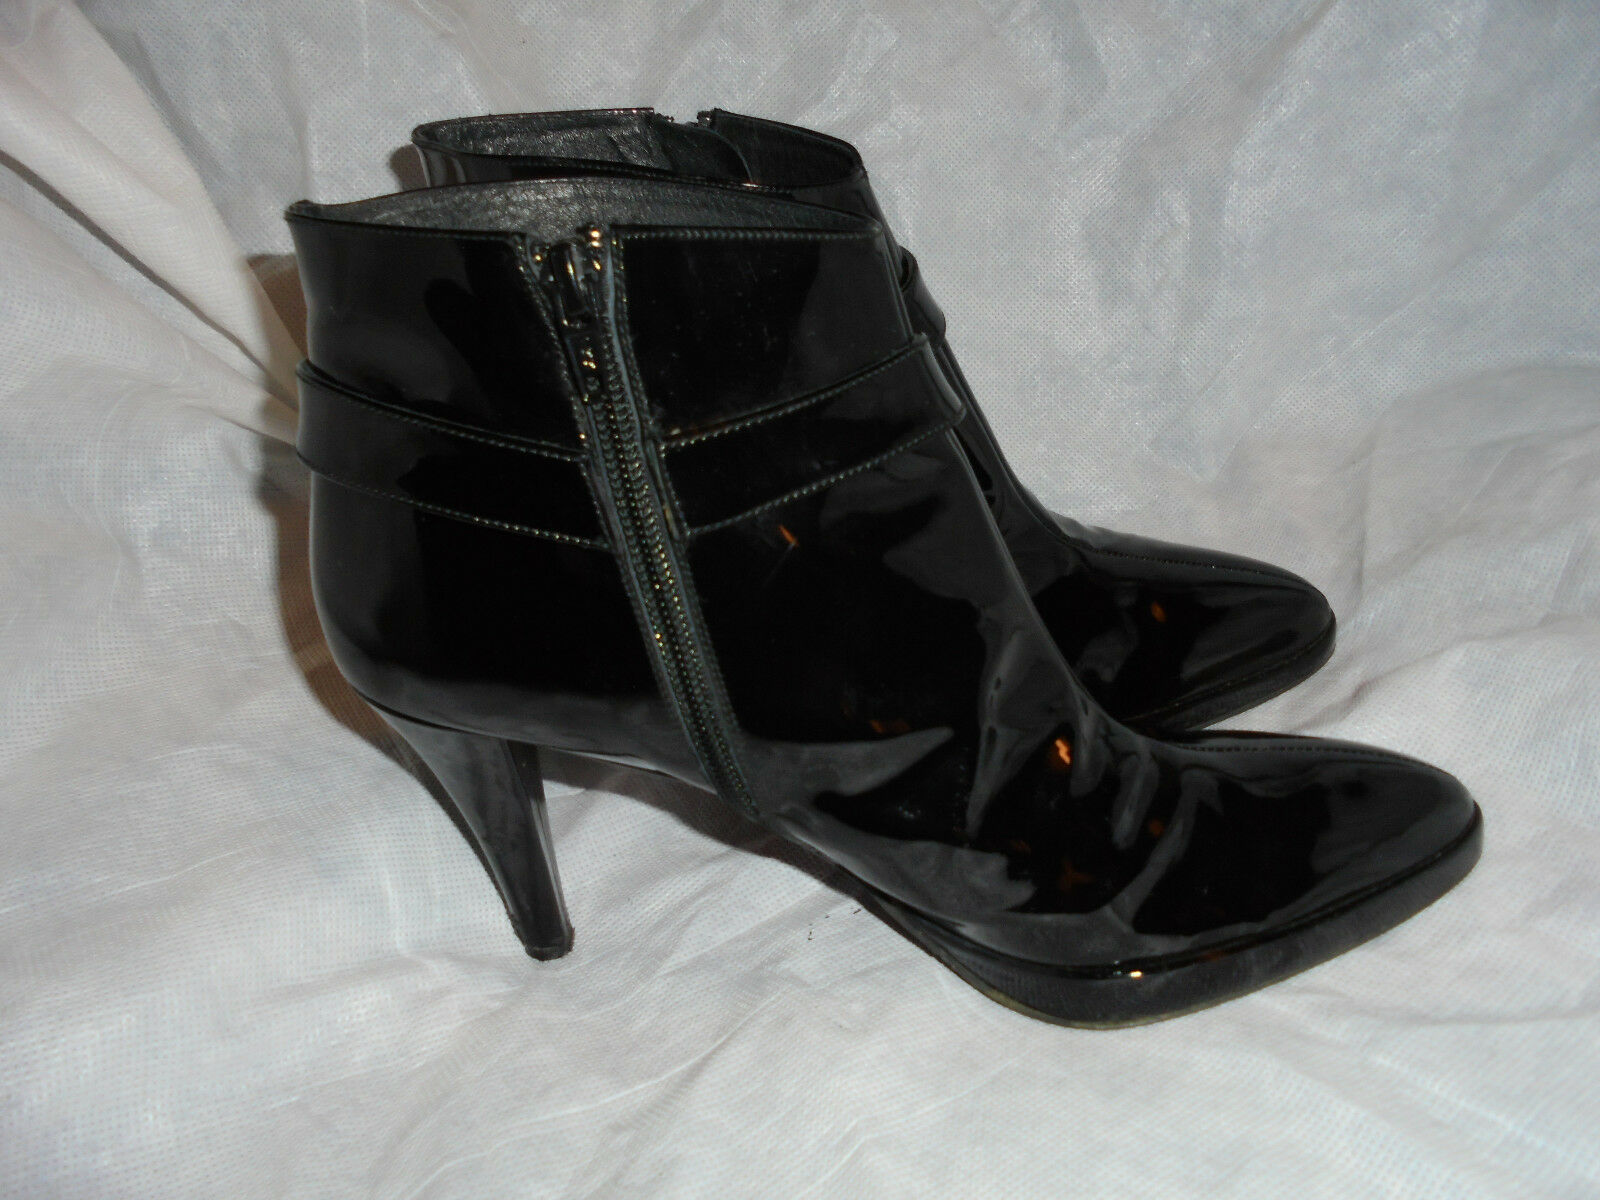 LISA KAY  WOMEN'S PATENT LEATHER ZIP ANKLE BOOT SIZE US UK 8 EU 41 US SIZE 11  VGC 50a3cb